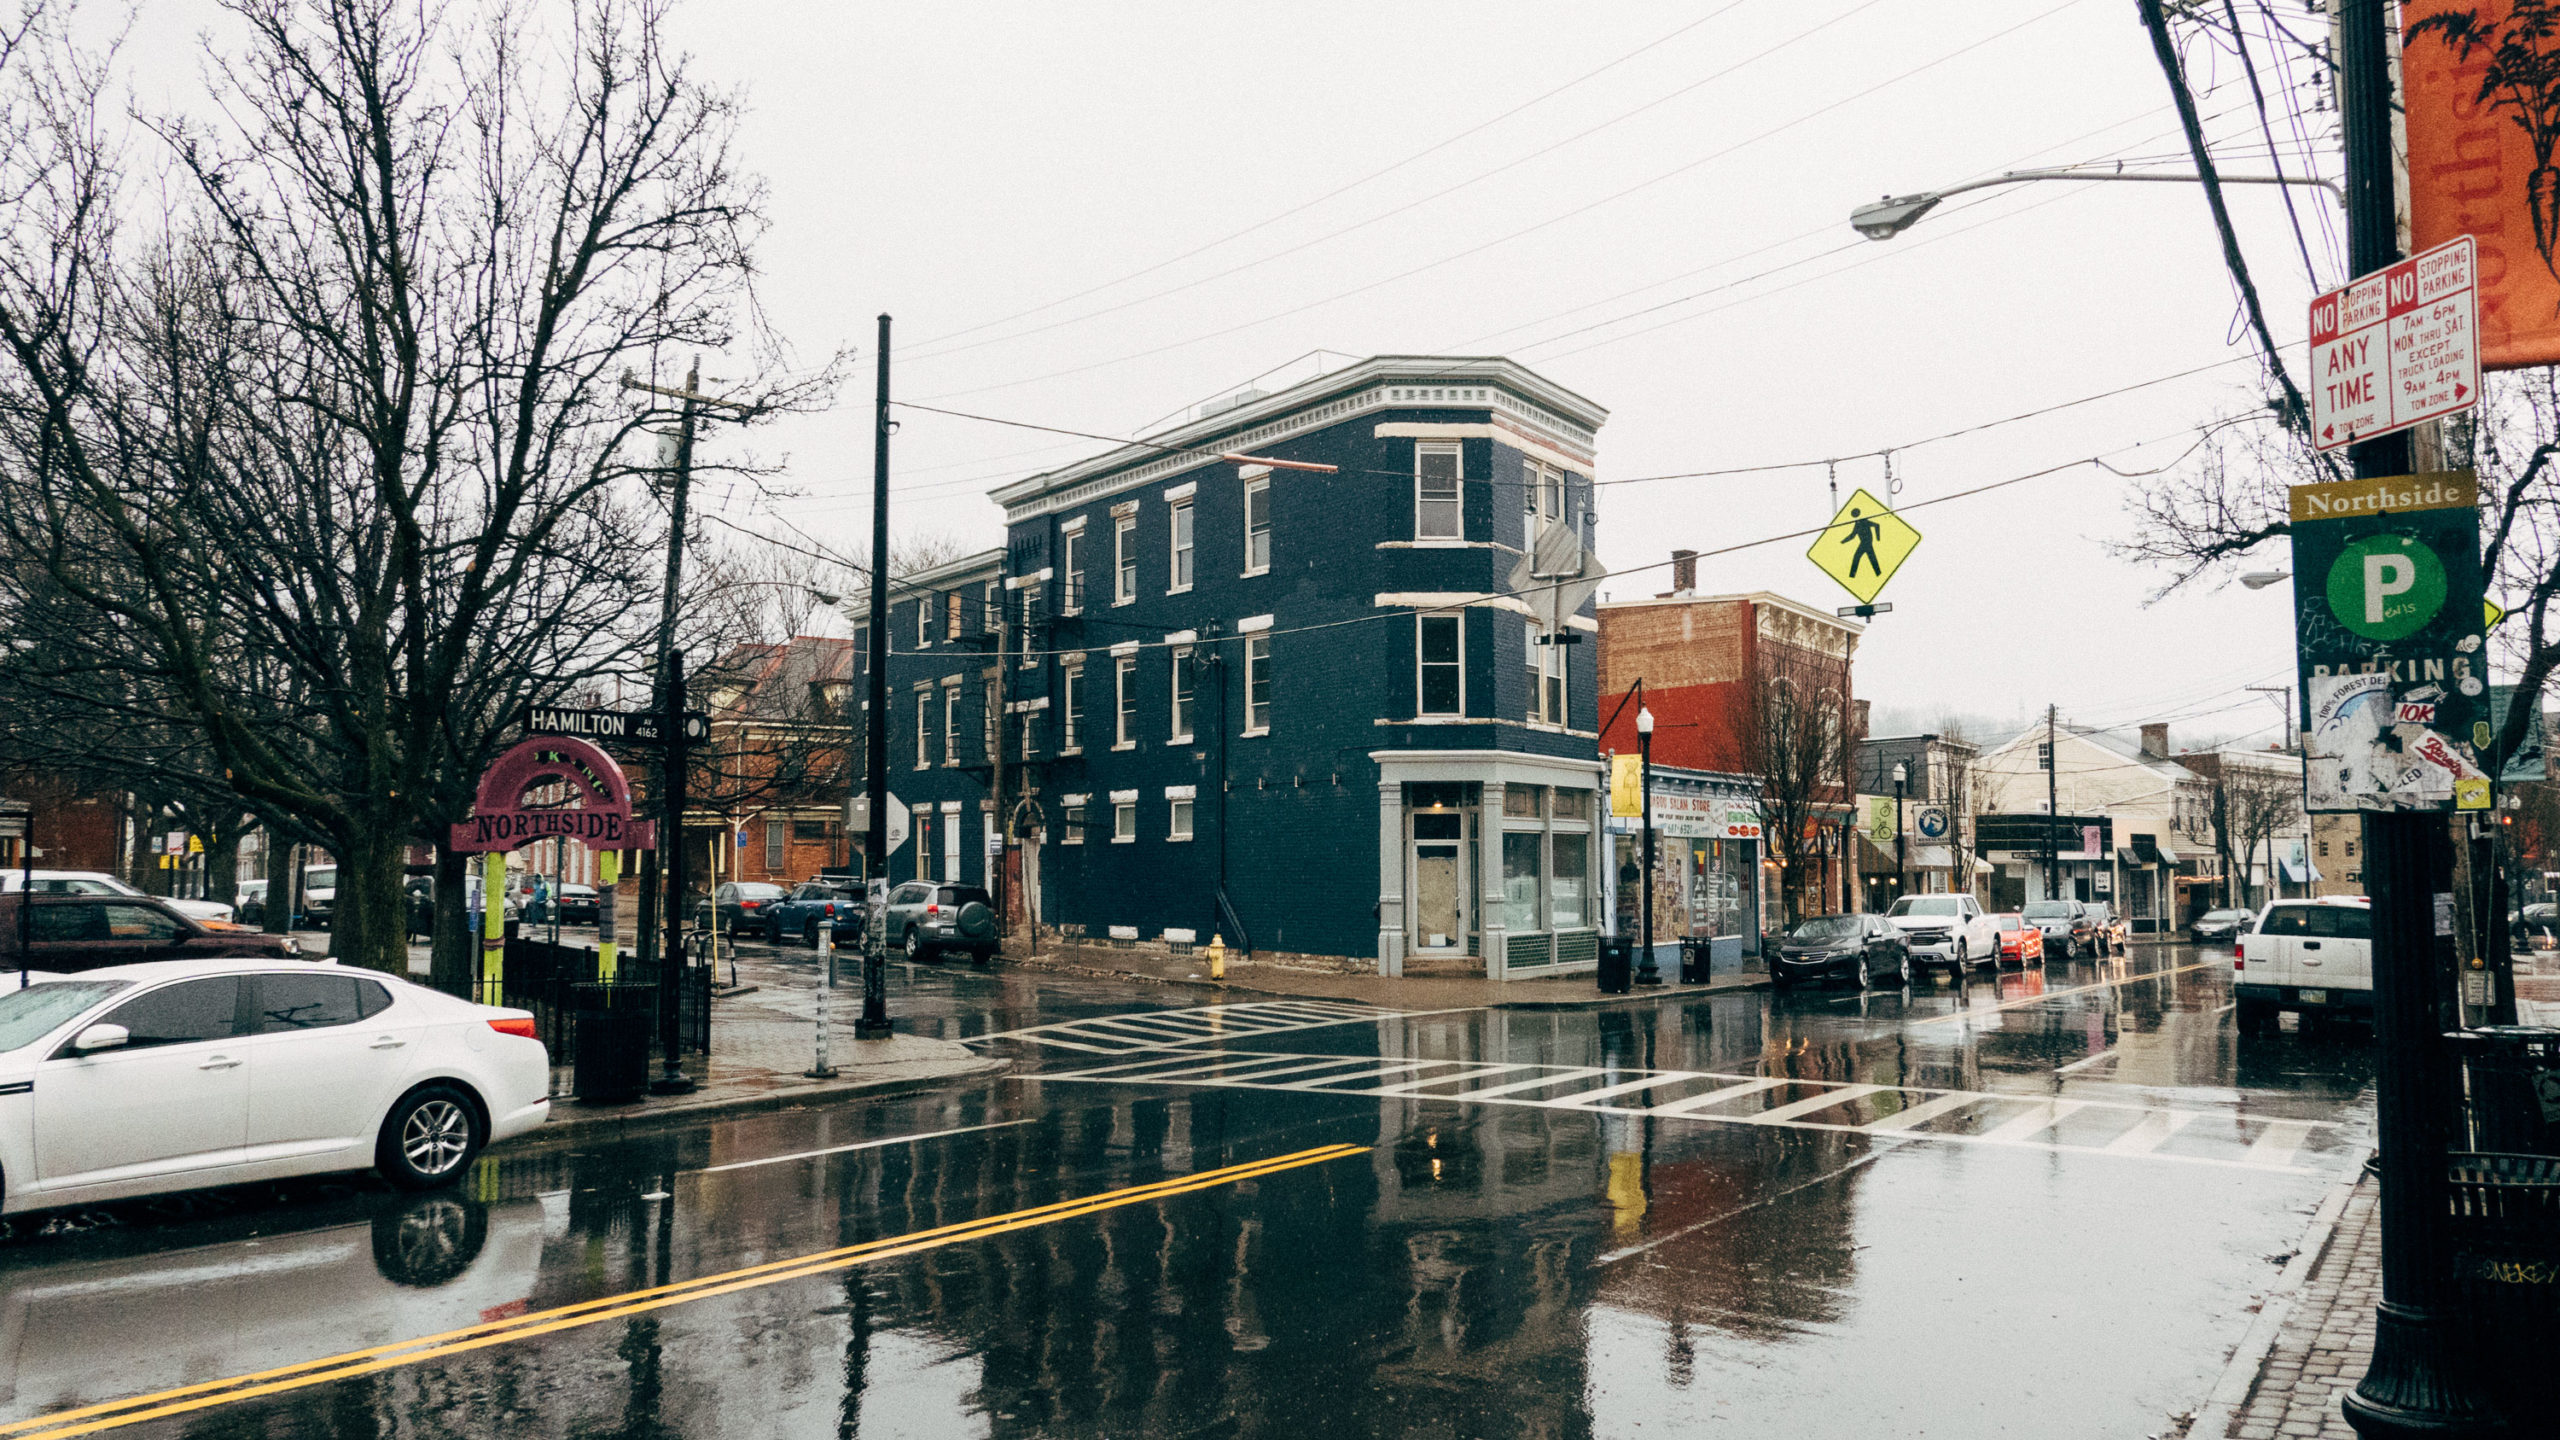 A corner building in a neighborhood reflected in the rain soaked street